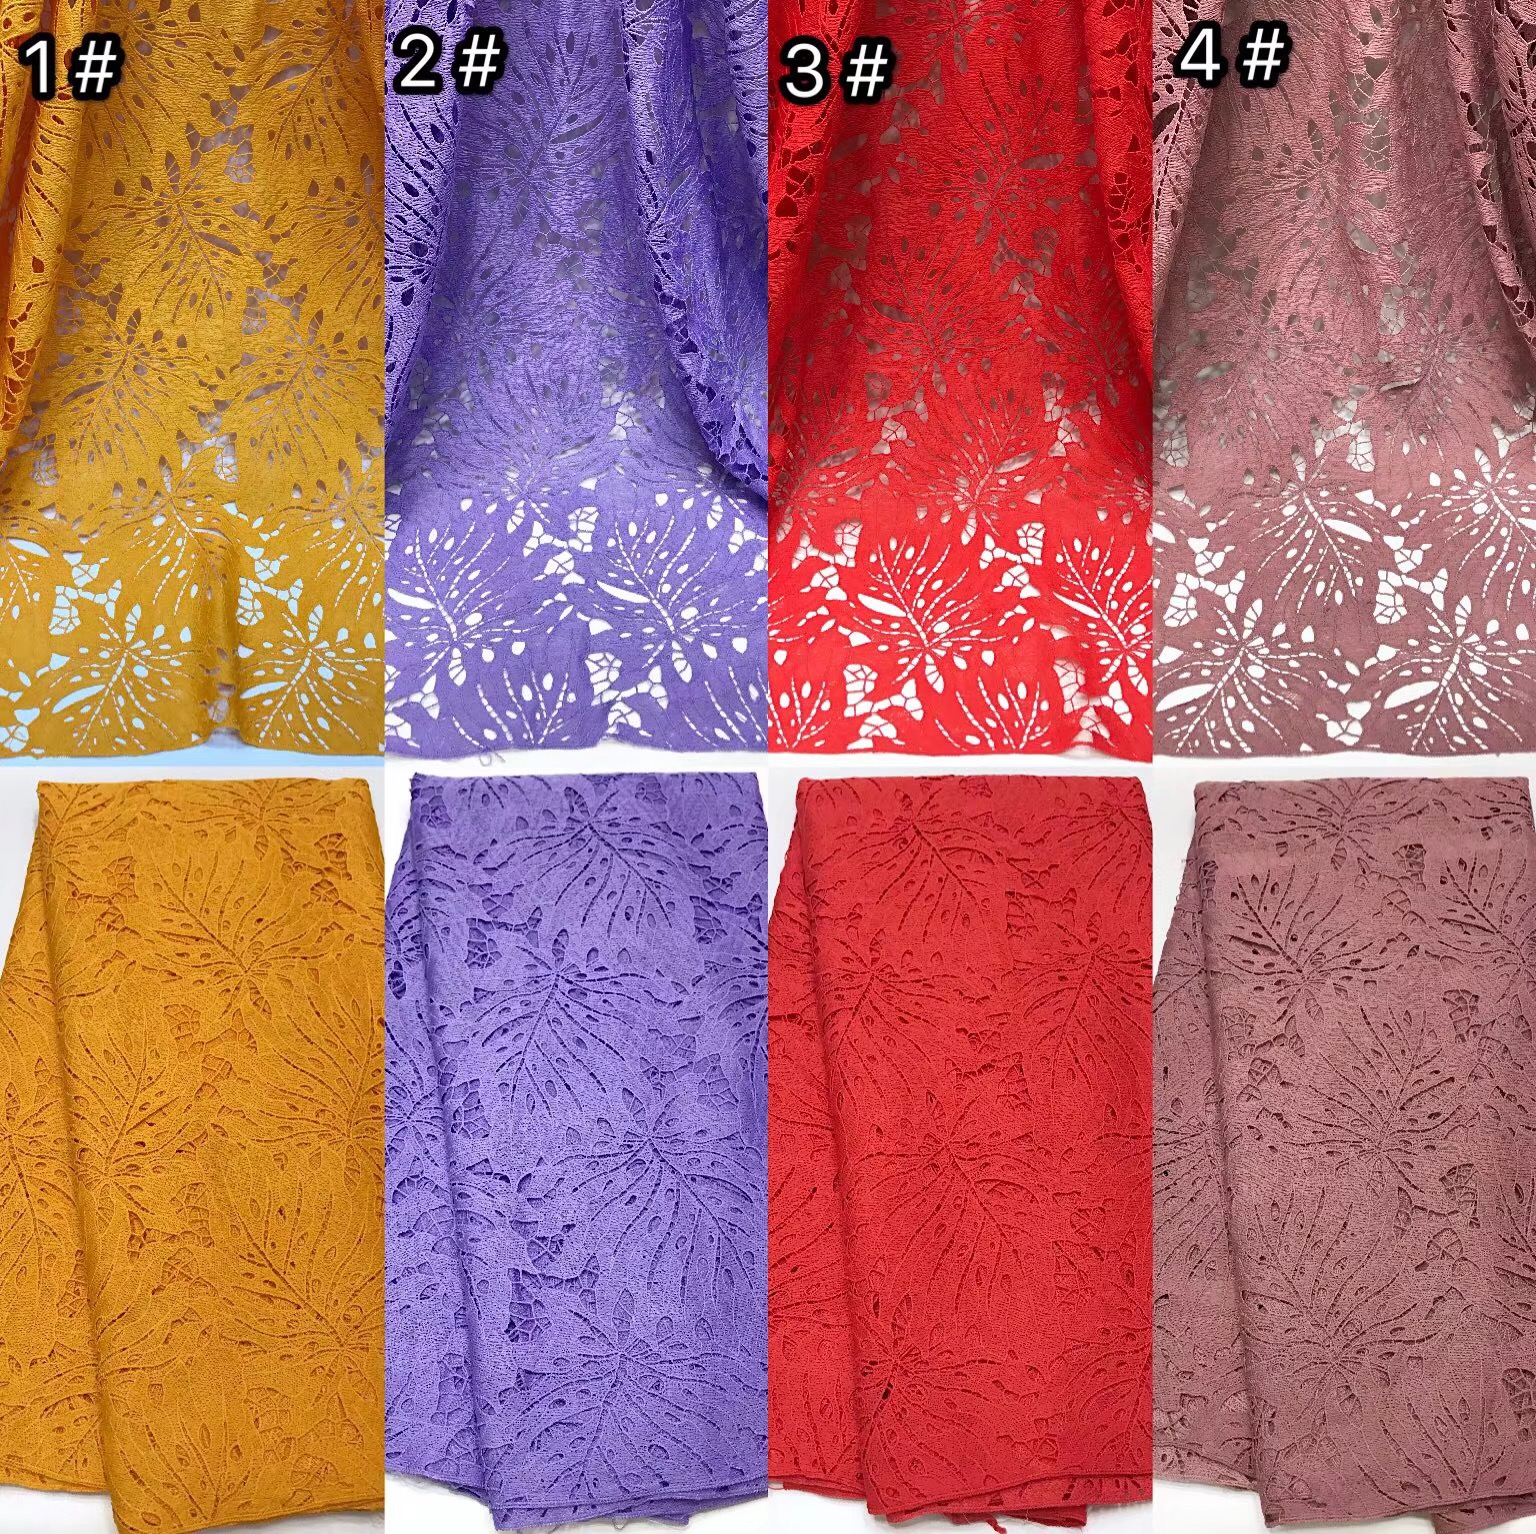 Lace embroidered with rhinestones dense material guipure lace fabric for making ladies dresses